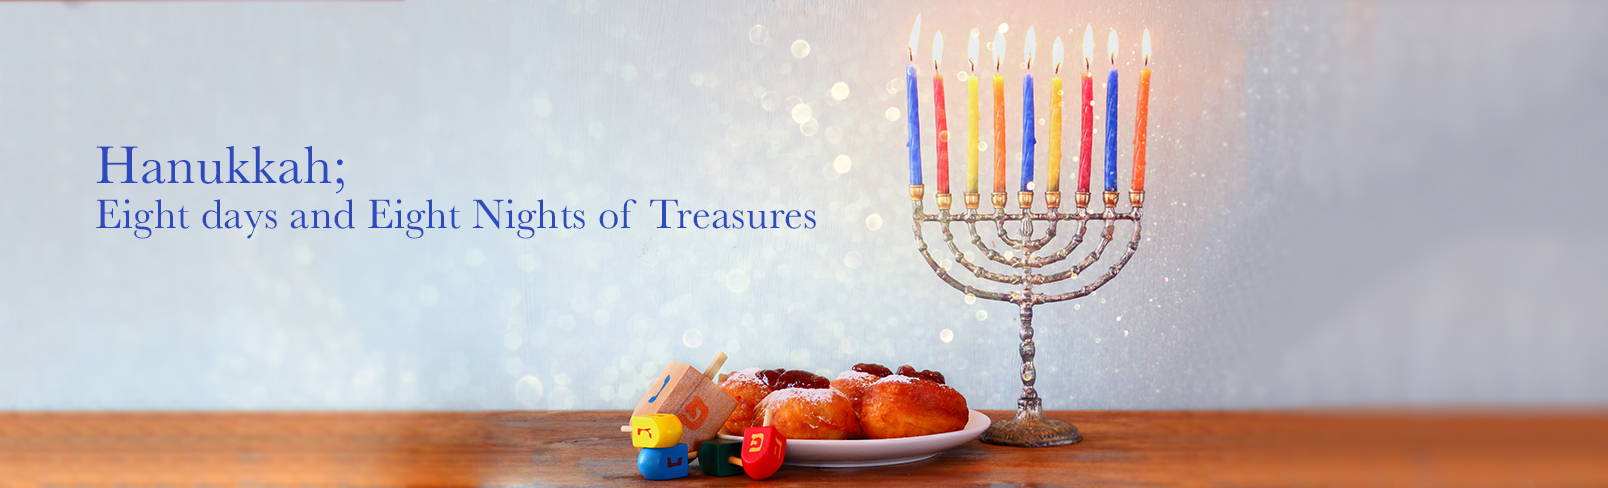 High Quality Organics Express Hanukkah menorah with donuts and dreidel